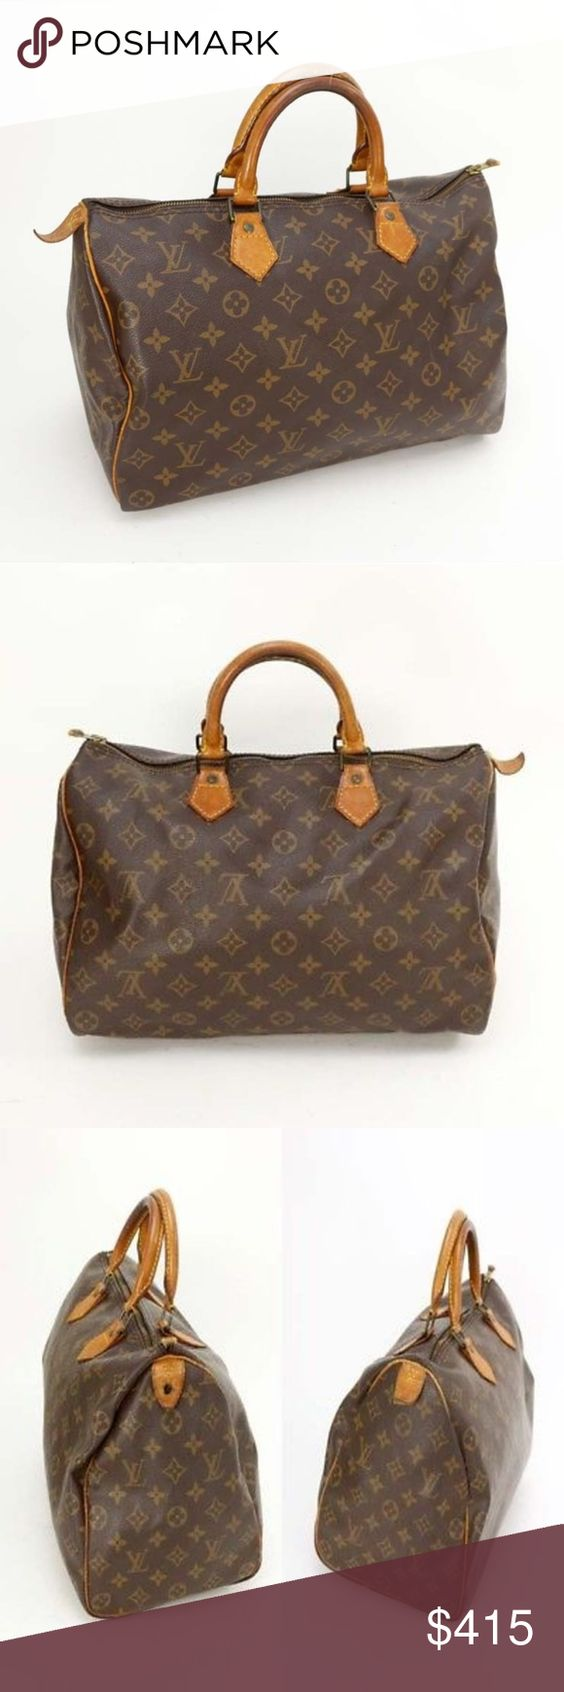 Louis Vuitton Speedy 35 M41524 HandBag 10964 Outside: Minor rubs scratches and stains on the leather parts. Minor discoloration partially. Minor stickiness on the surface. Minor rubs at the all of corners. Rubs,peeling and cracked on a part of handle. Tar